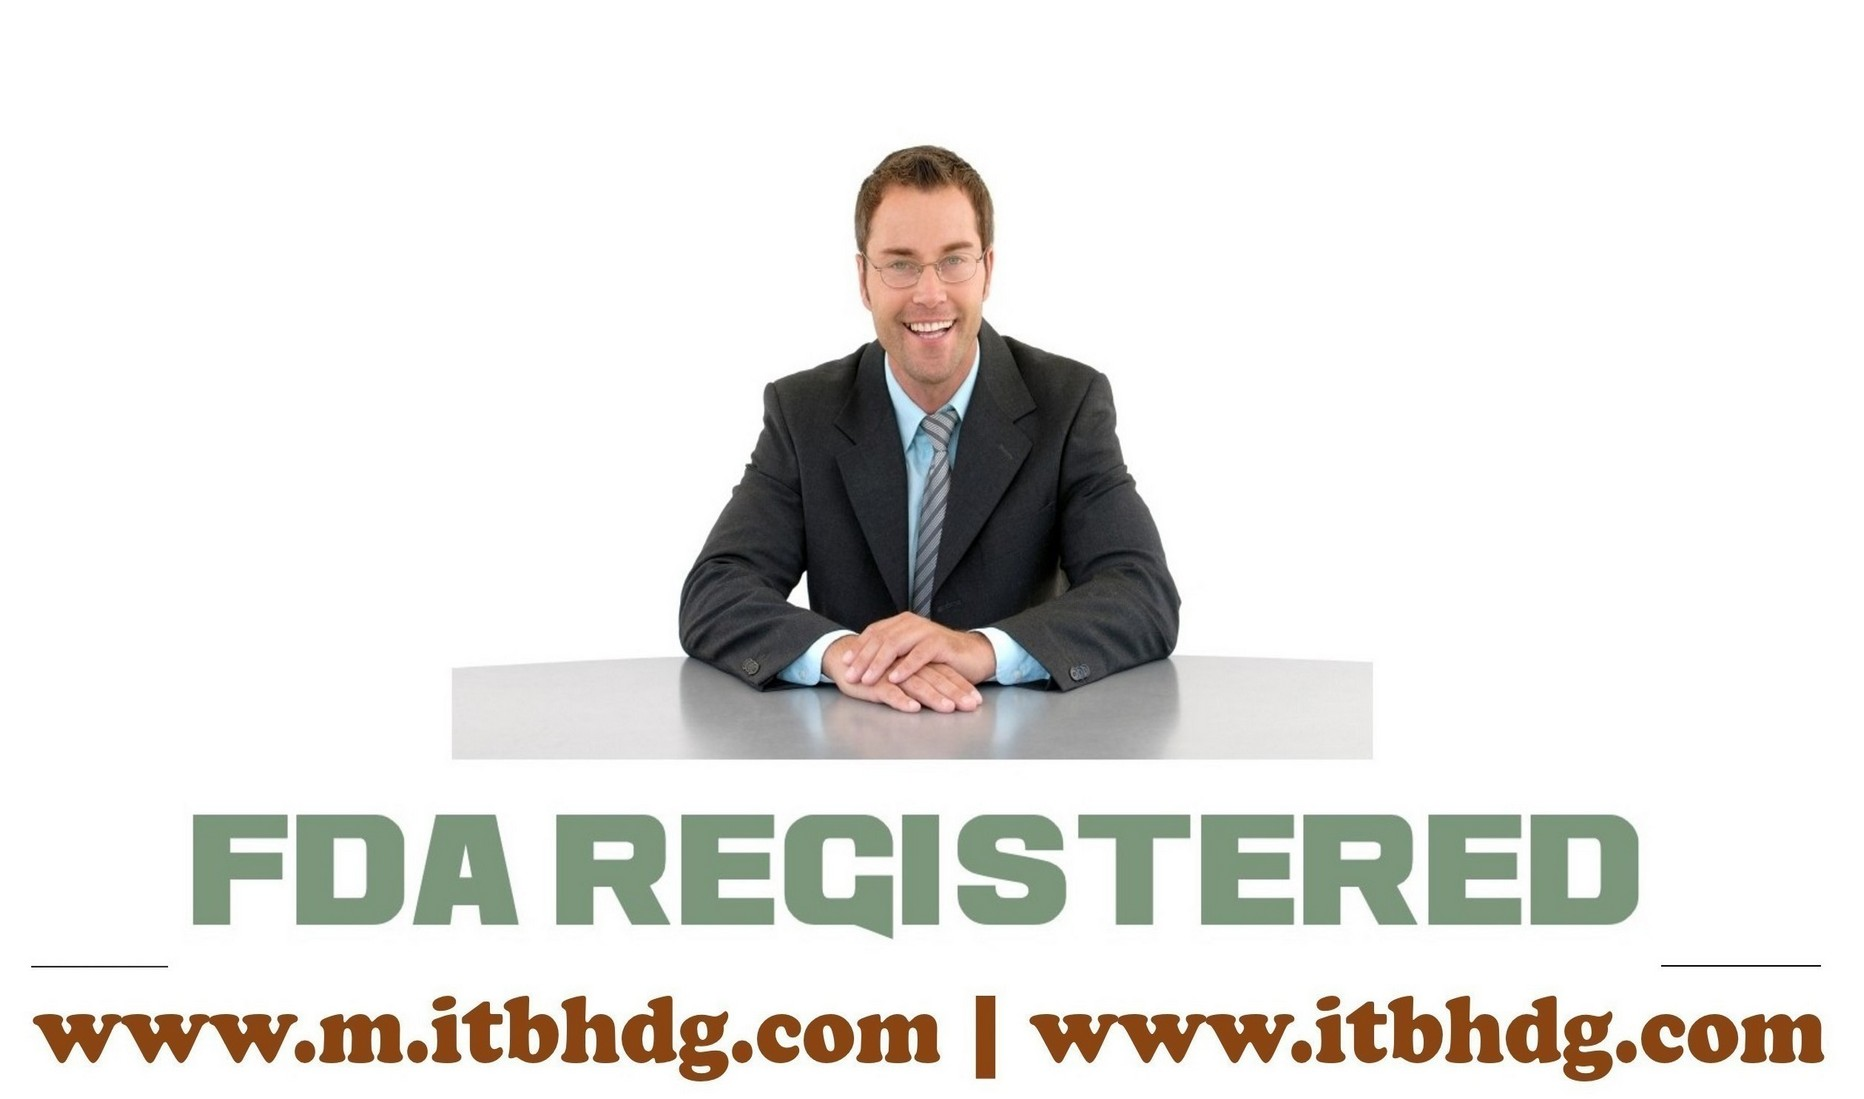 Contact ITB HOLDINGS LLC at T : +1 855 510 2240 | T : +1 855 389 7344 | T : +44 800 610 1577 | FDA REGISTRATION for 99 Dollars